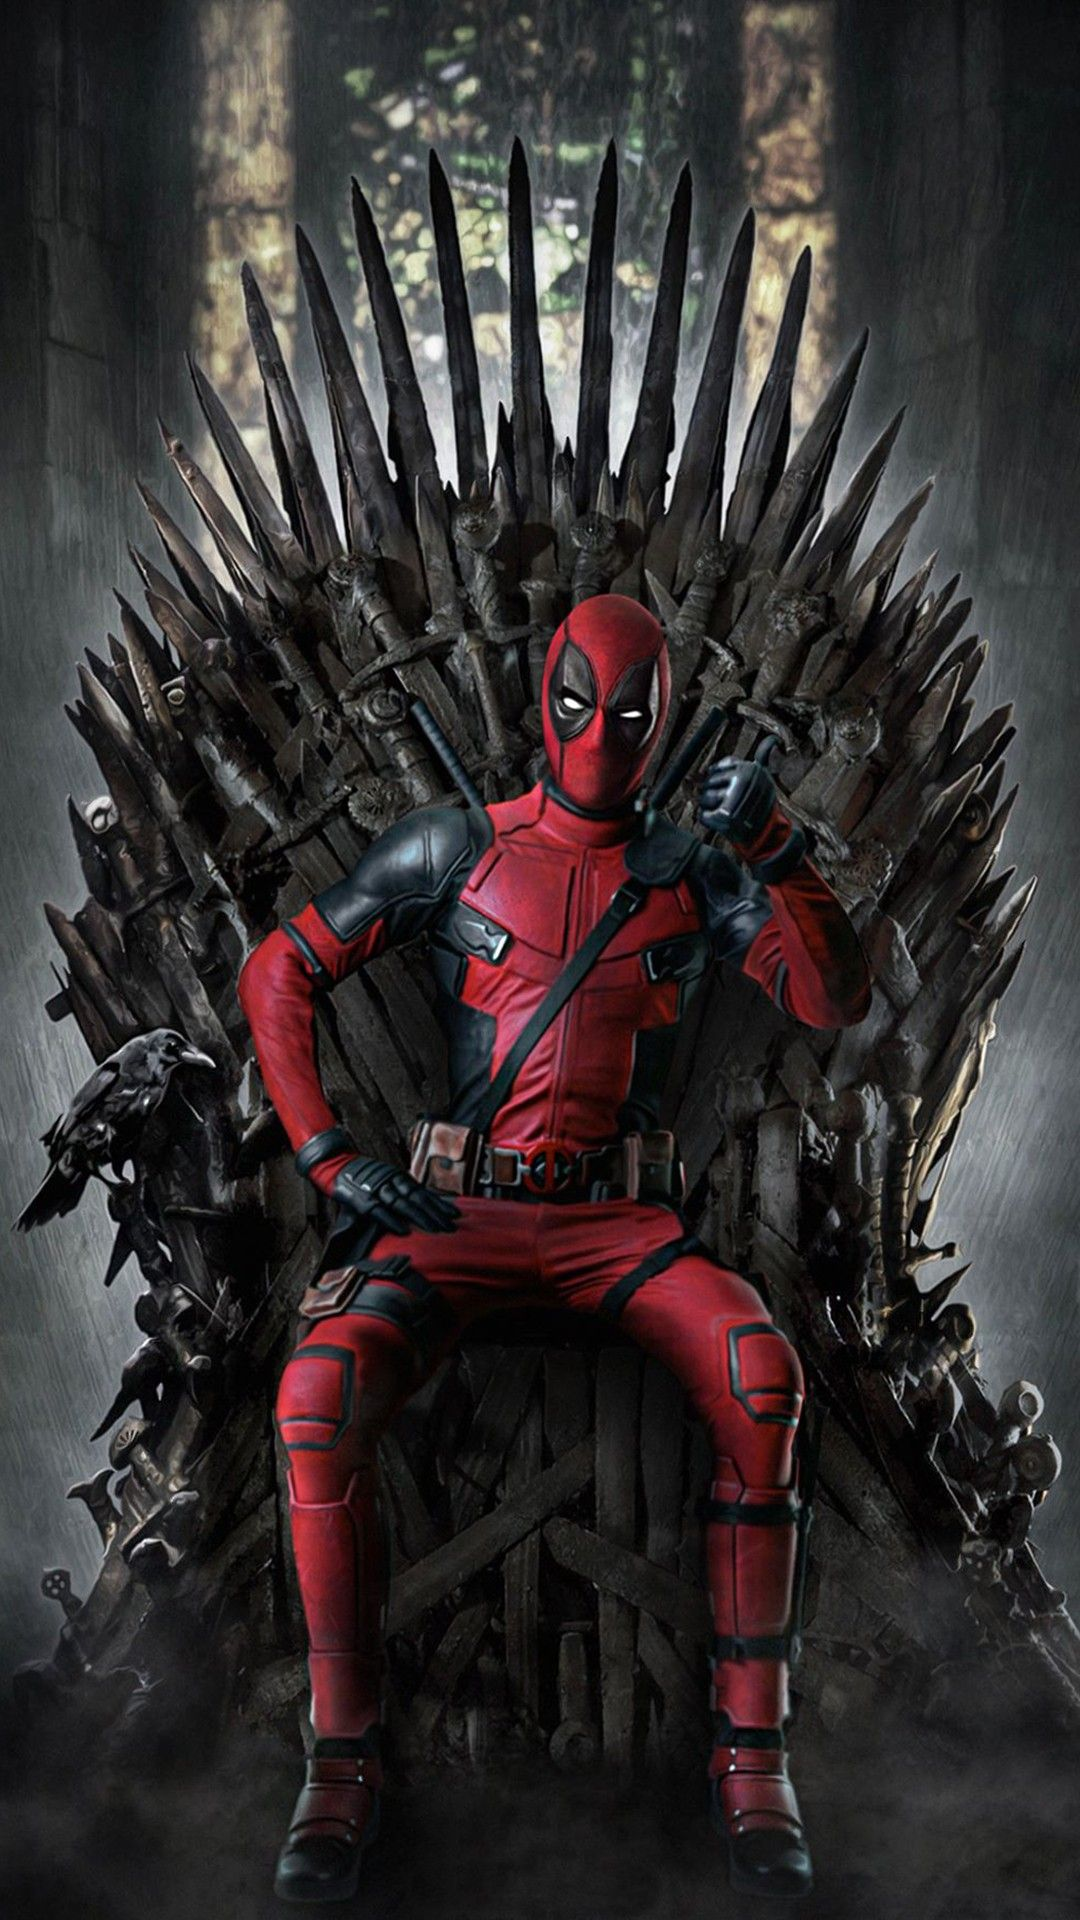 Deadpool On The Throne Deadpool Wallpaper Marvel Comics Wallpaper Deadpool Art